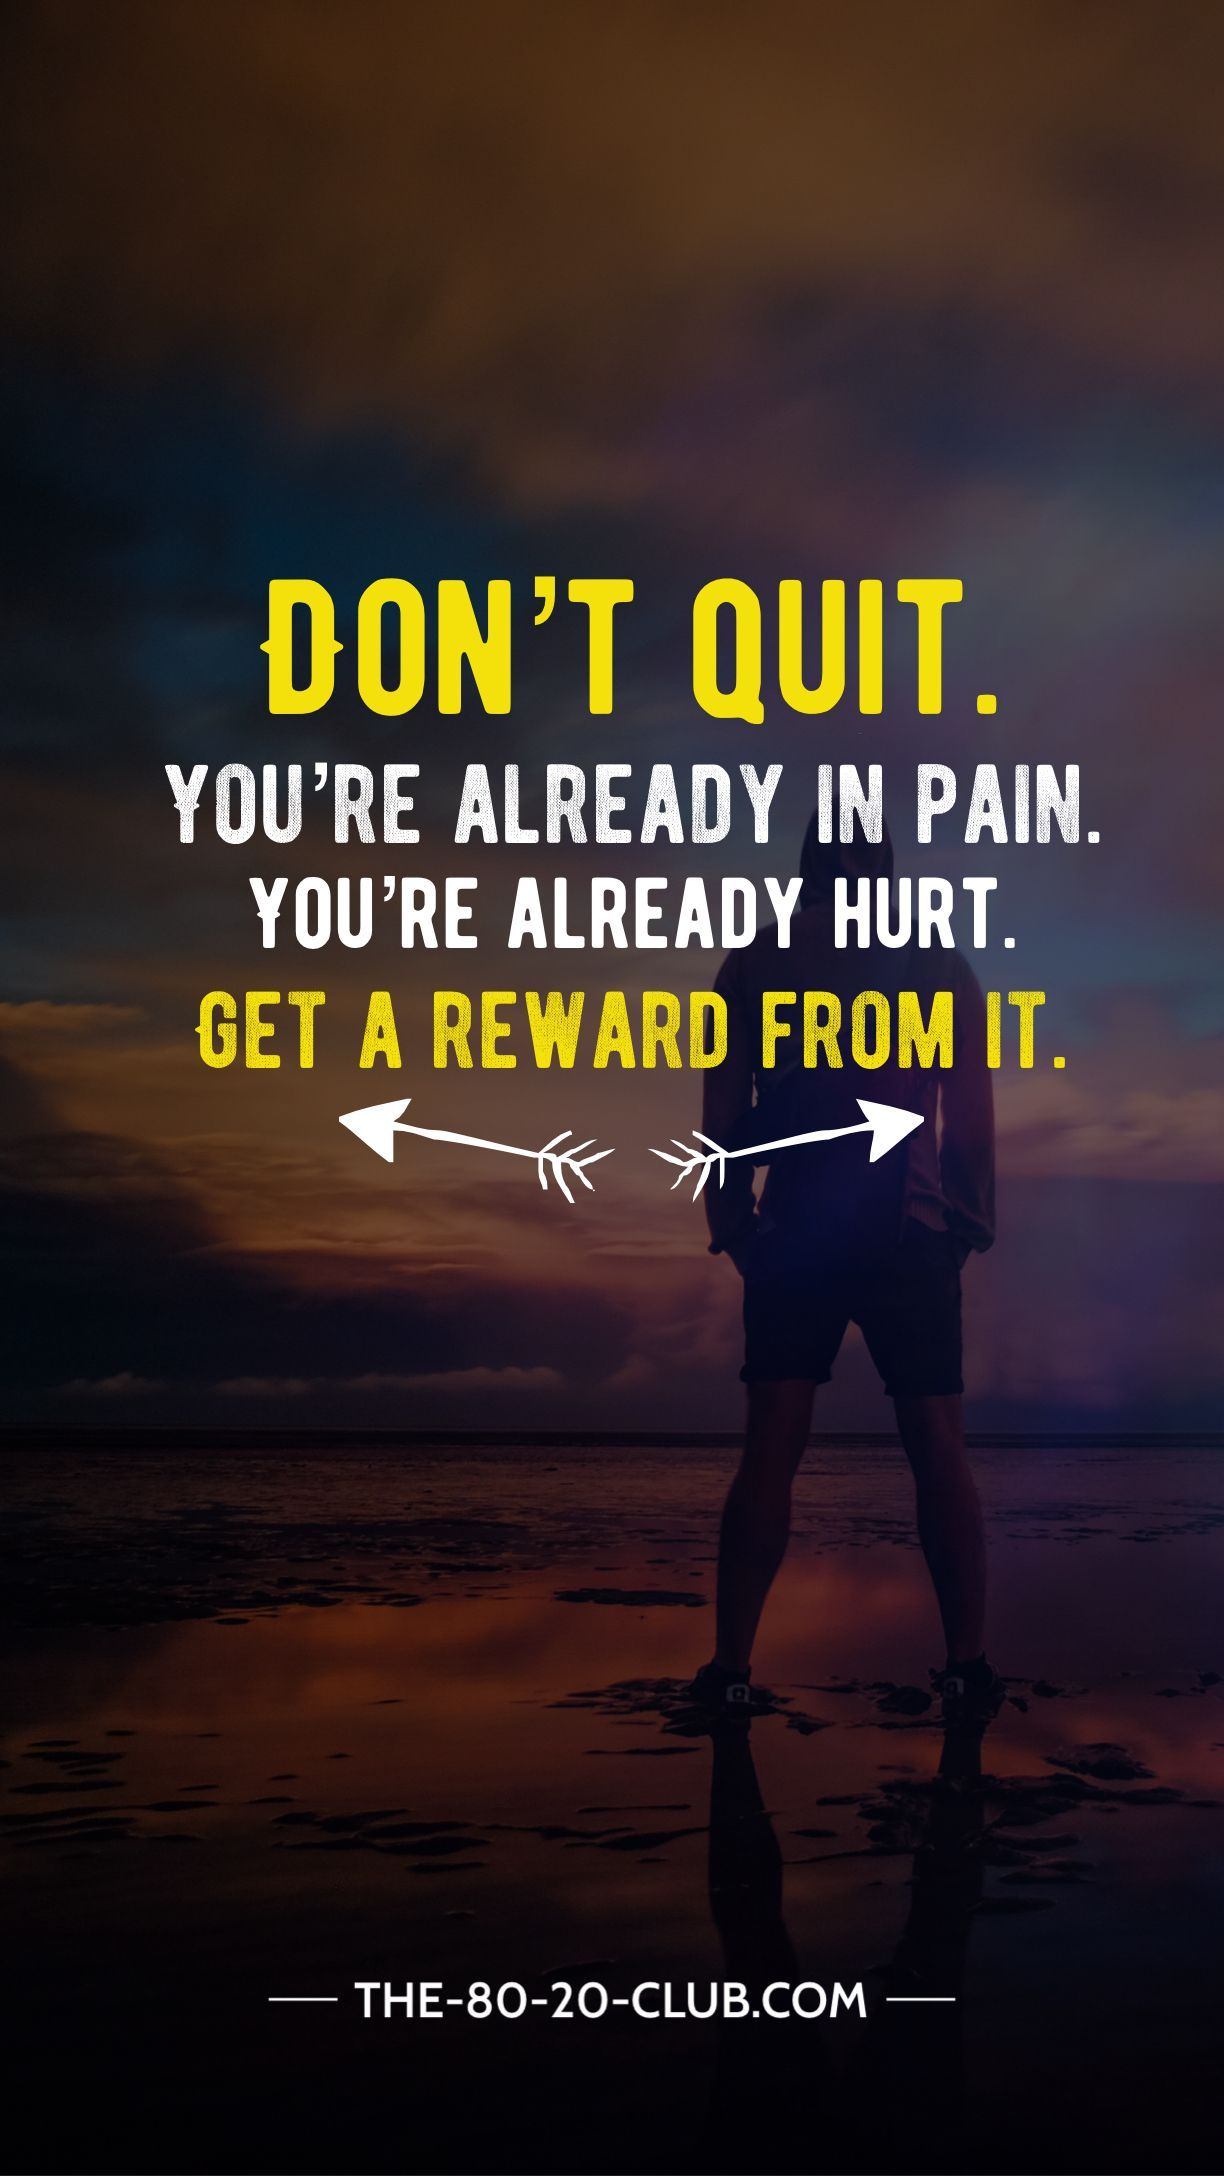 Motivational Quotes For Success Entrepreneur Succ Motivational Quotes For Success Motivational Quotes For Success Positivity Motivational Quotes For Students